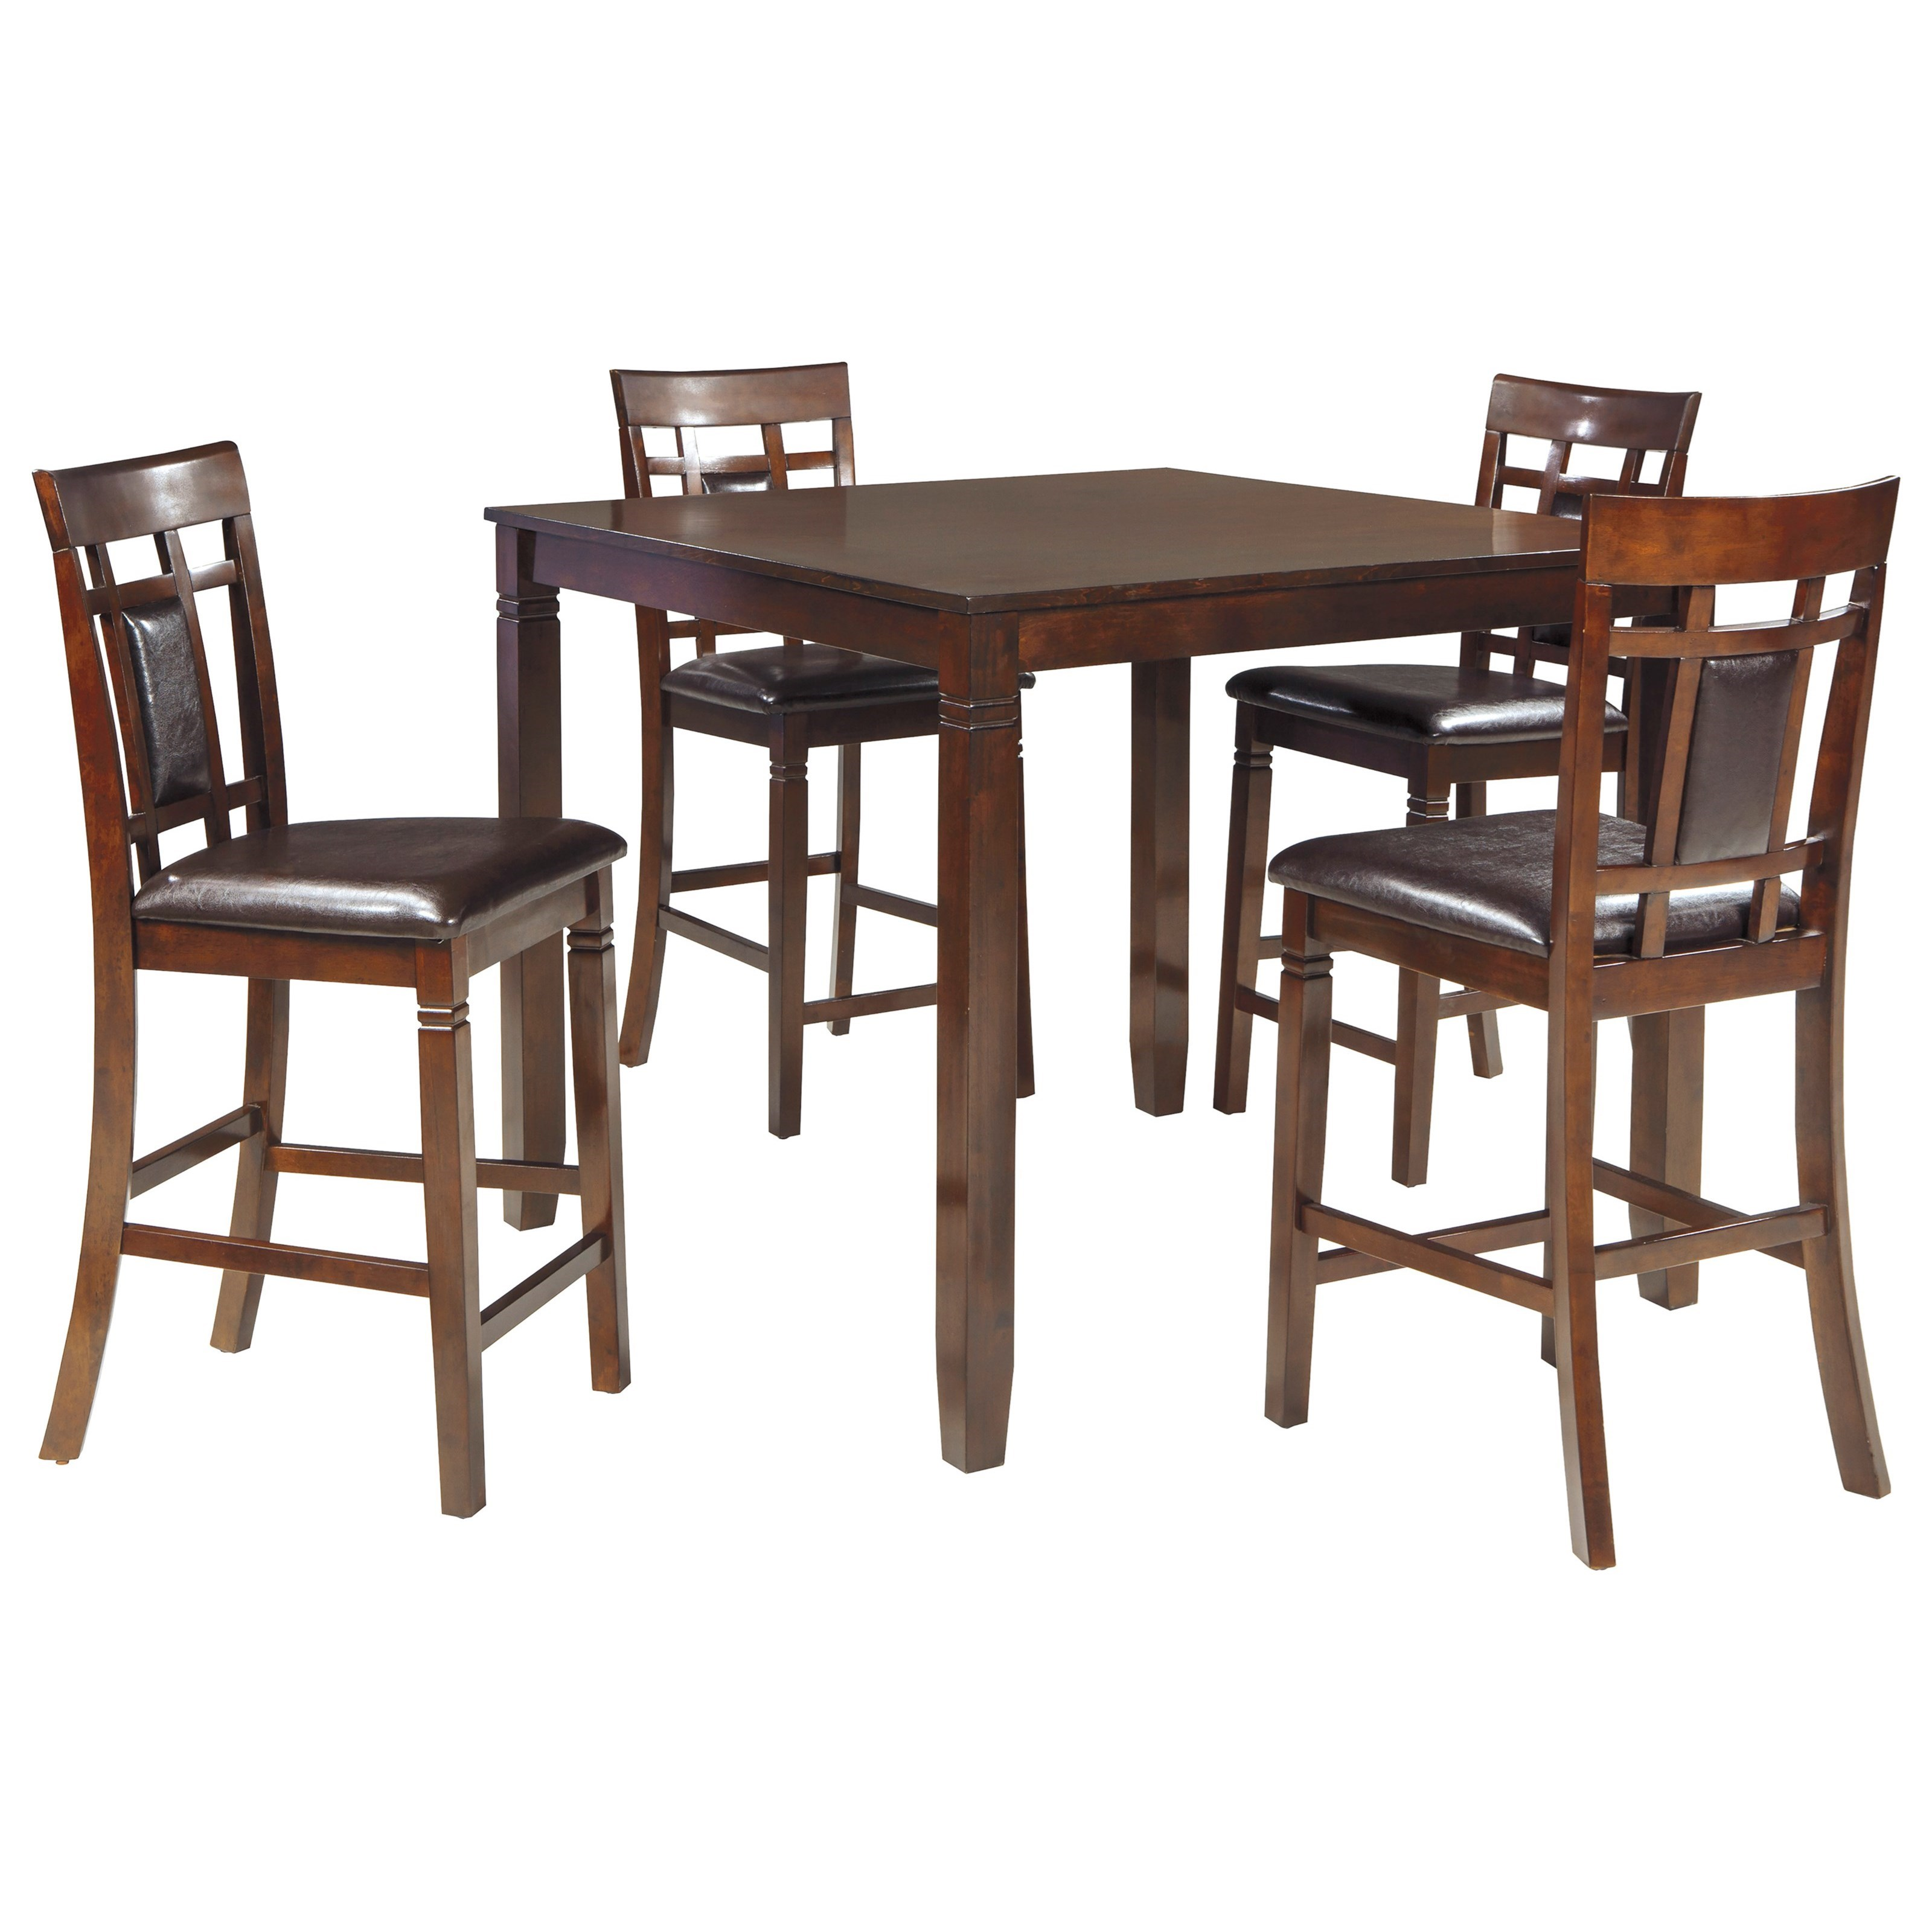 Signature Design by Ashley Bennox 5-Piece Dining Room Counter Table Set - Item Number  sc 1 st  Northeast Factory Direct & Signature Design by Ashley Bennox D384-223 5-Piece Dining Room ...